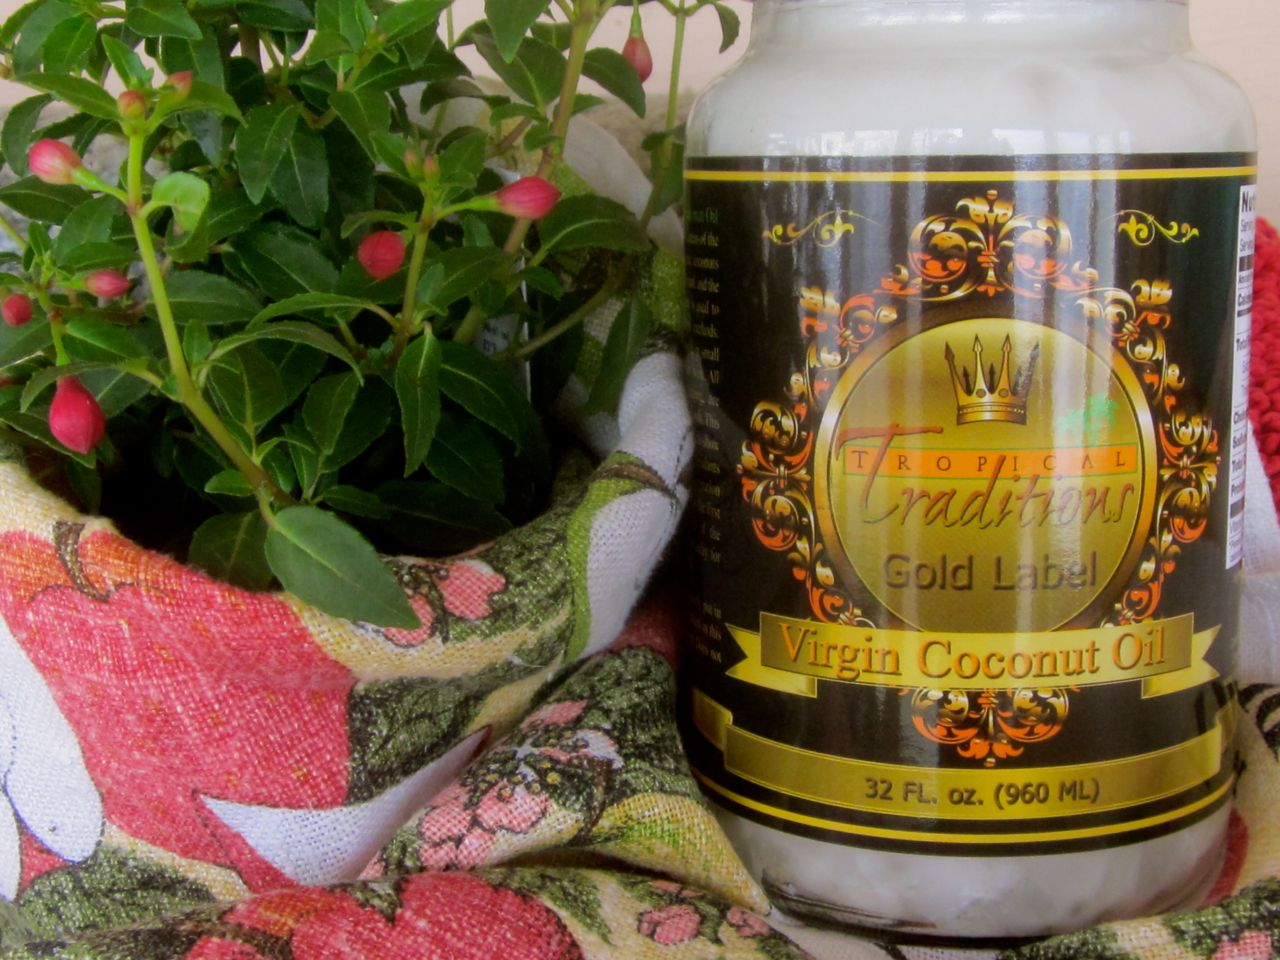 Tropical Traditions Virgin Coconut Oil–the Good Stuff!–GIVEAWAY!